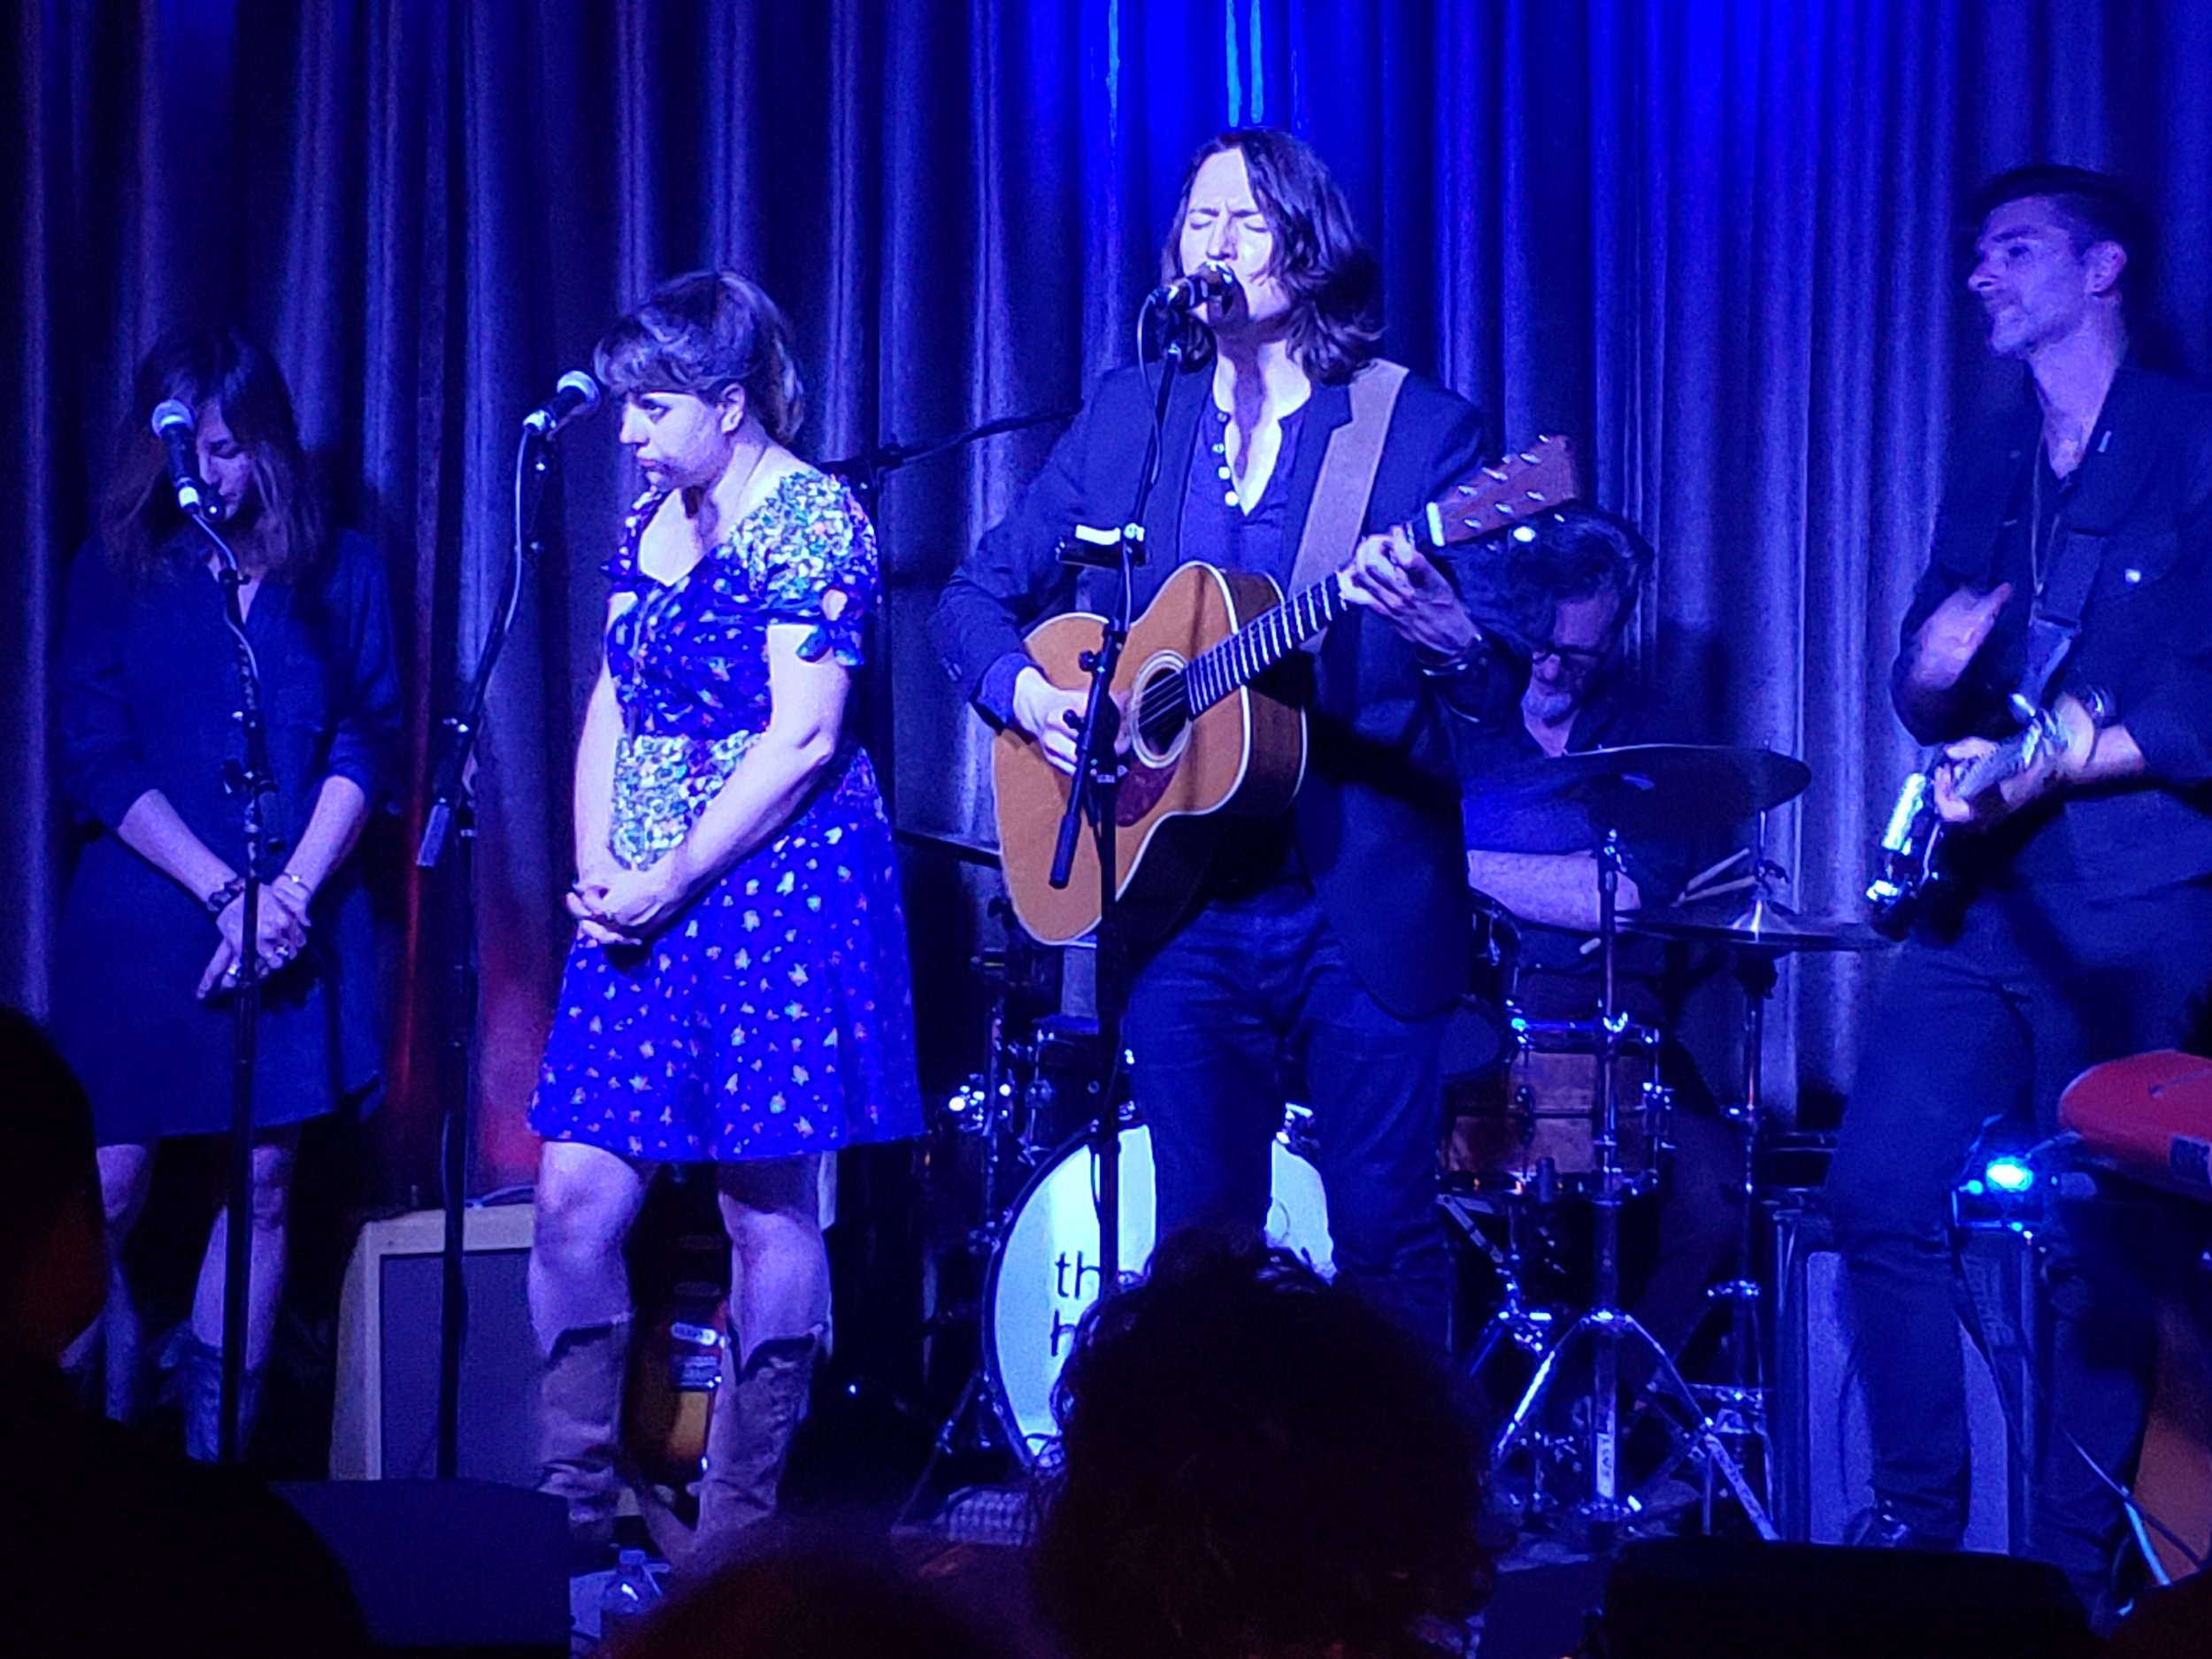 Szlachetka and his band perform at Hotel Cafe. Photo by Jessica Klausing.